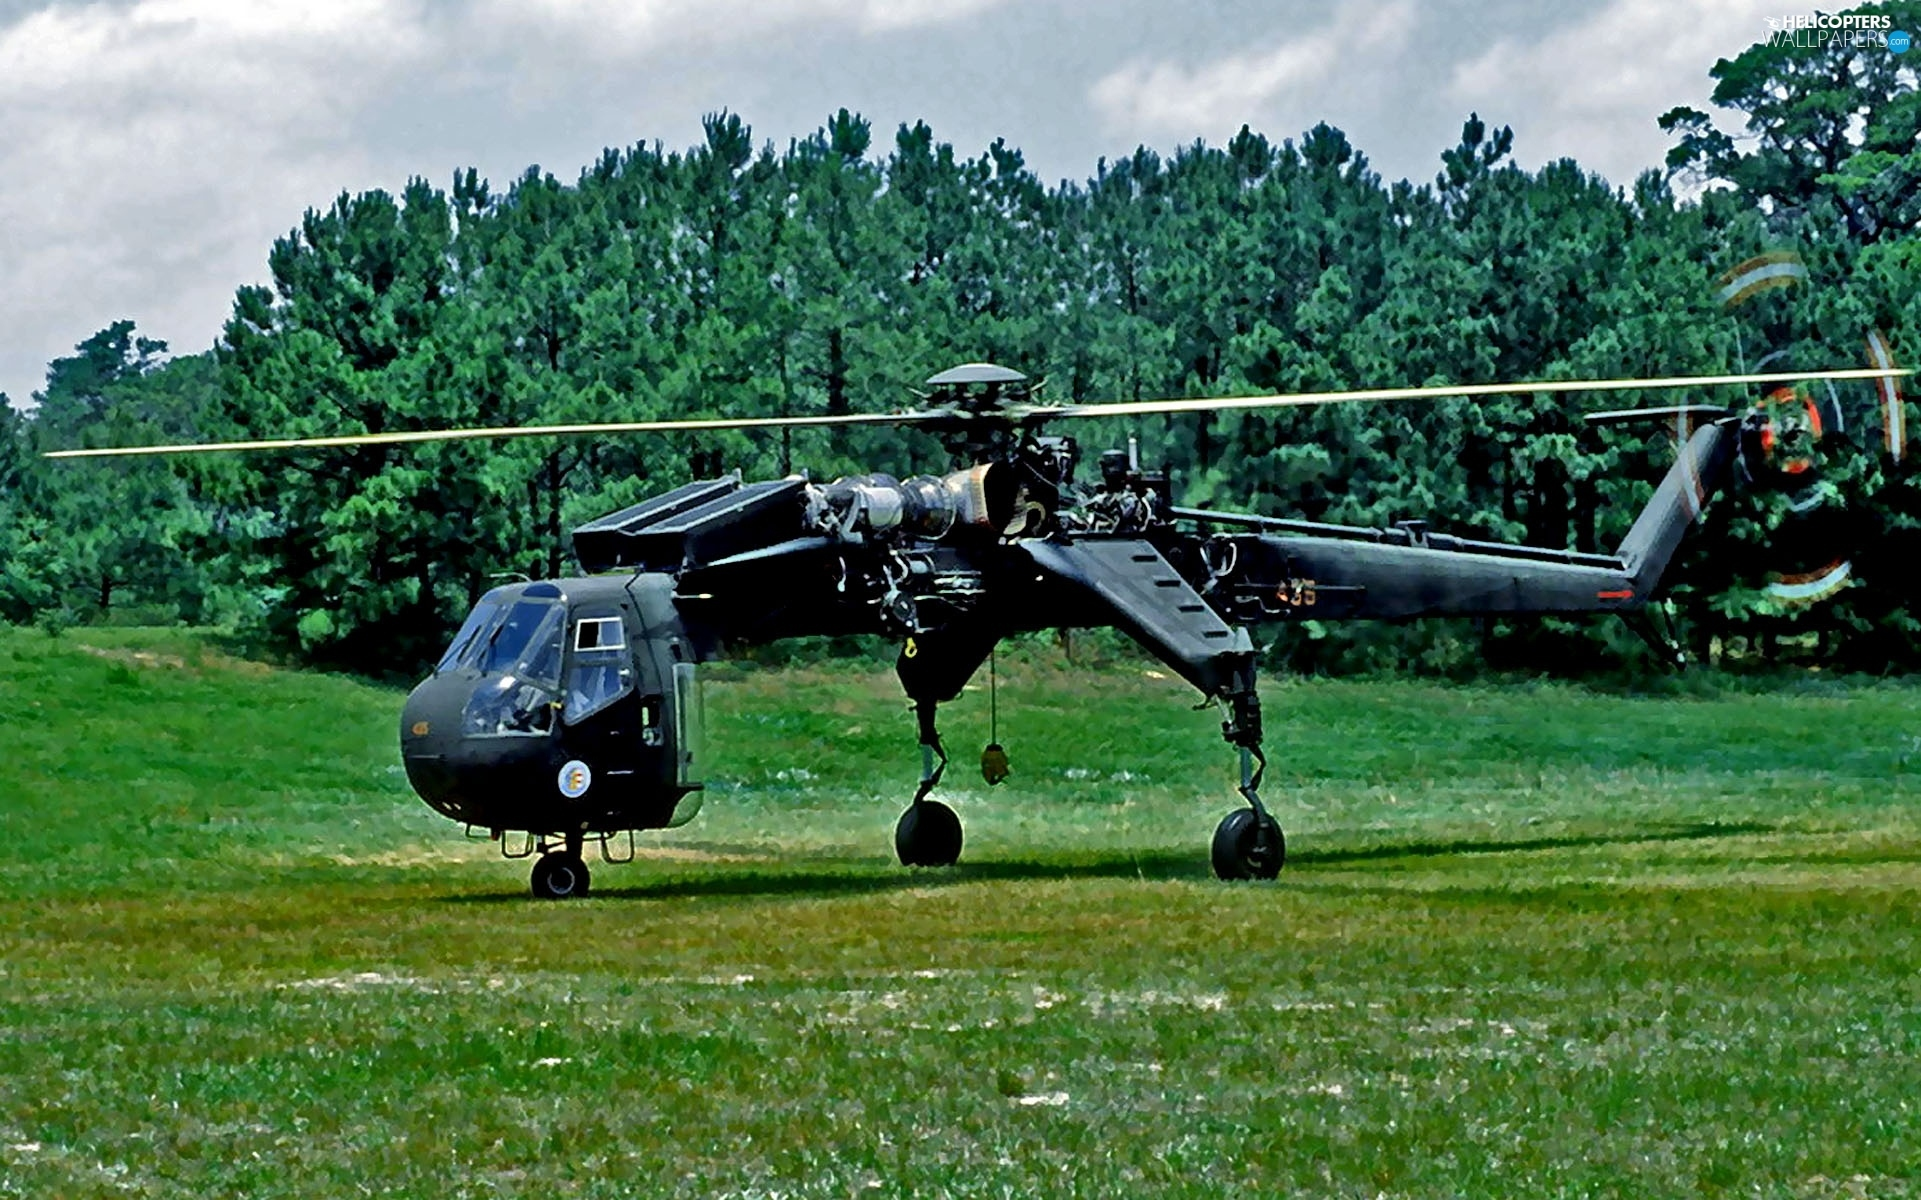 Helicopter, Sikorsky CH-54 Tarhe, carrying